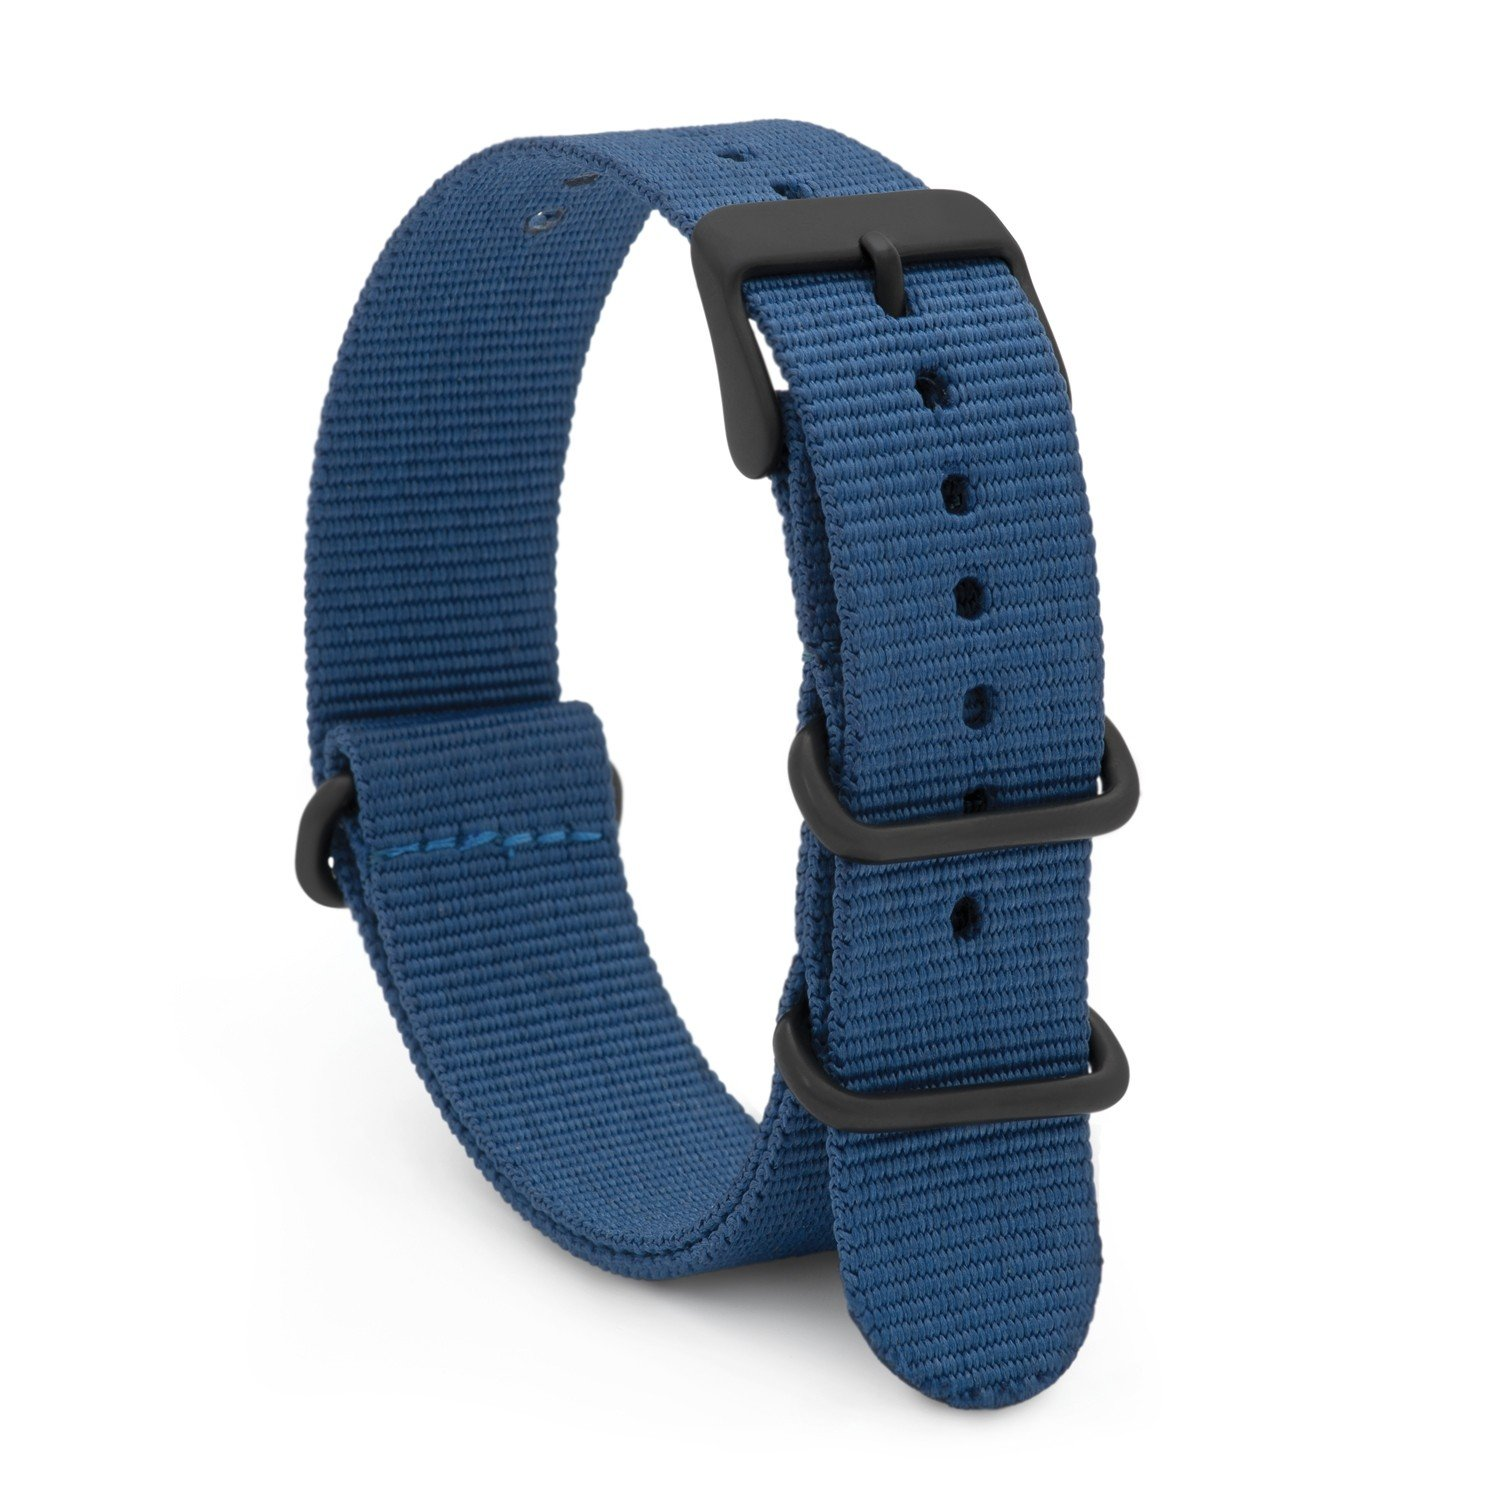 Speidel NATO Watch Band 20mm Blue Woven Military Style Nylon Strap with Heavy Duty Stainless Steel Keepers and Buckle